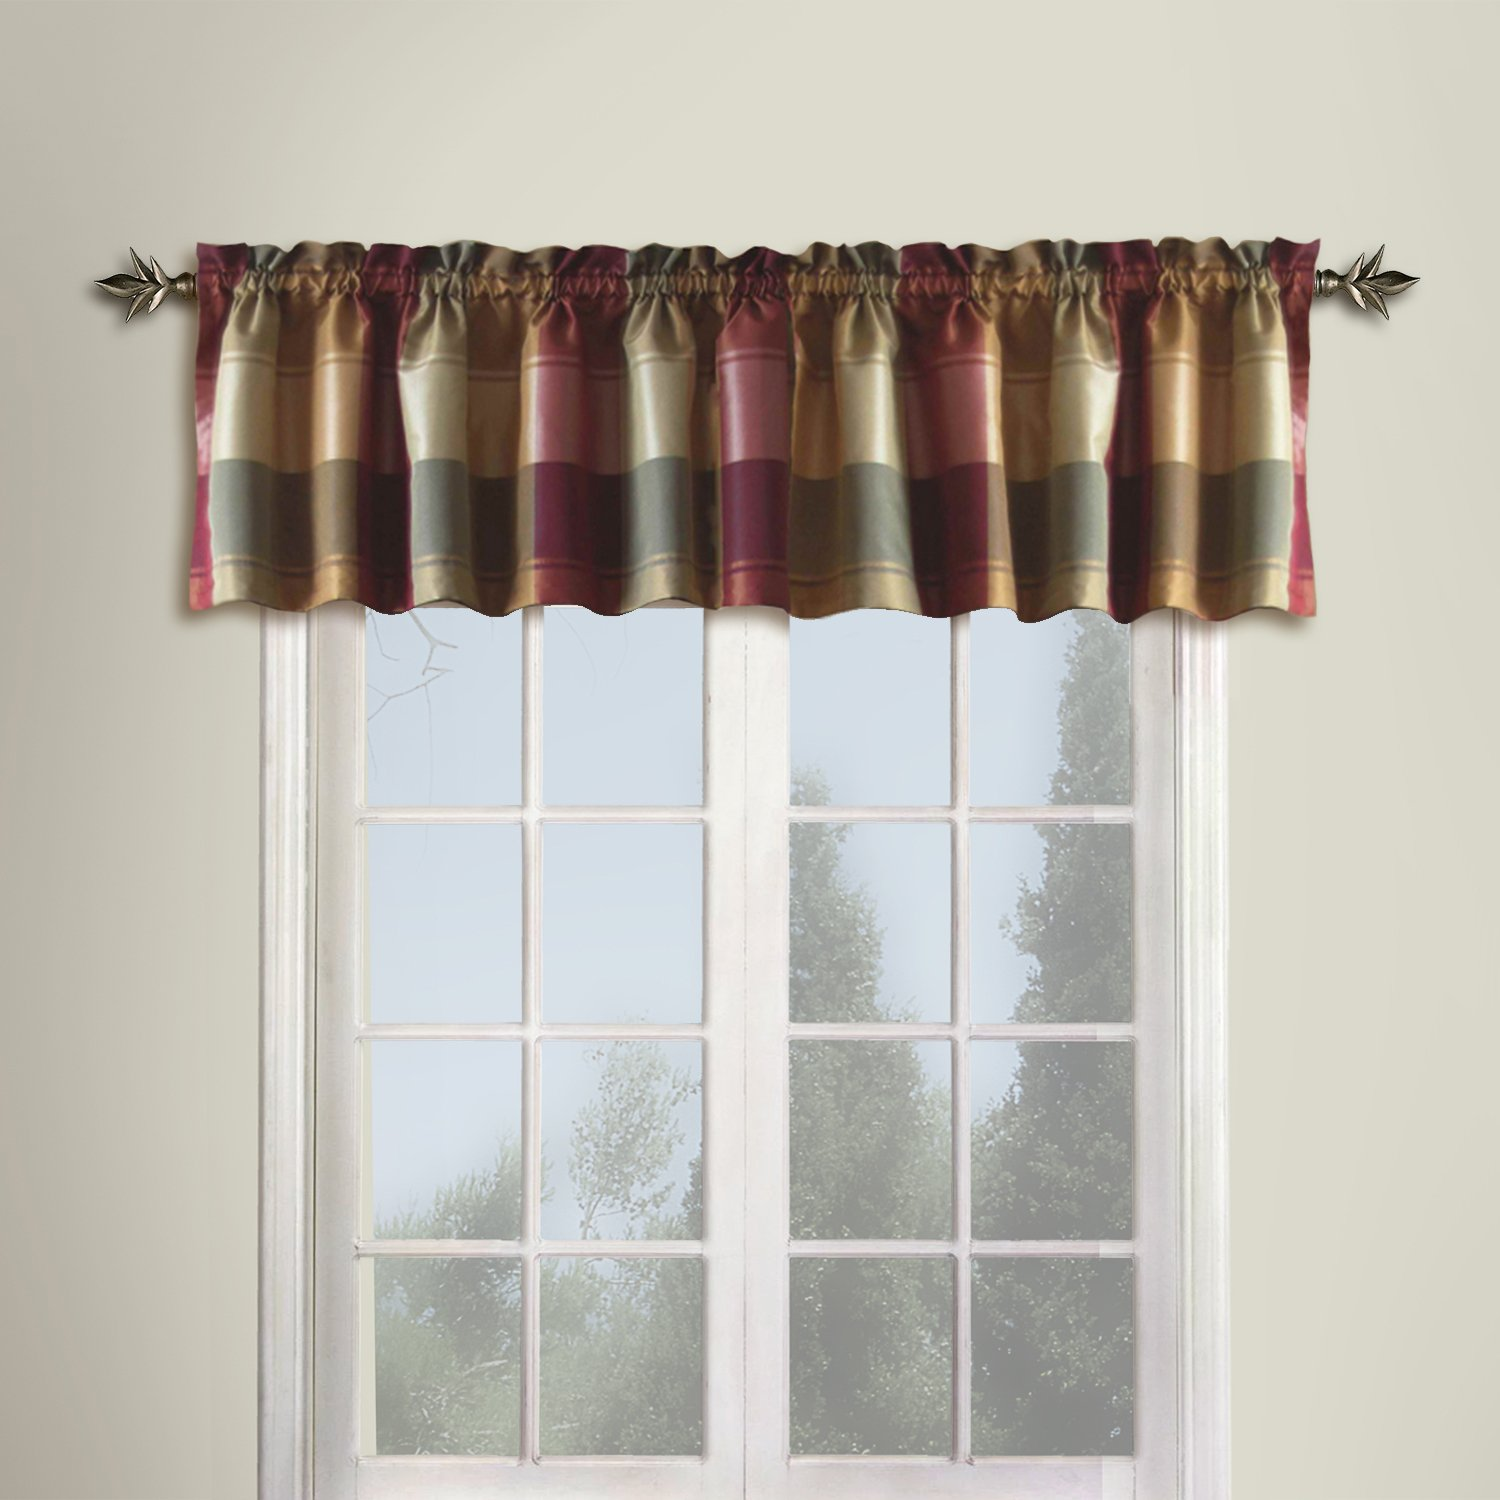 m valance pattern home shaped blue greek curtains shipping key free product overstock garden today